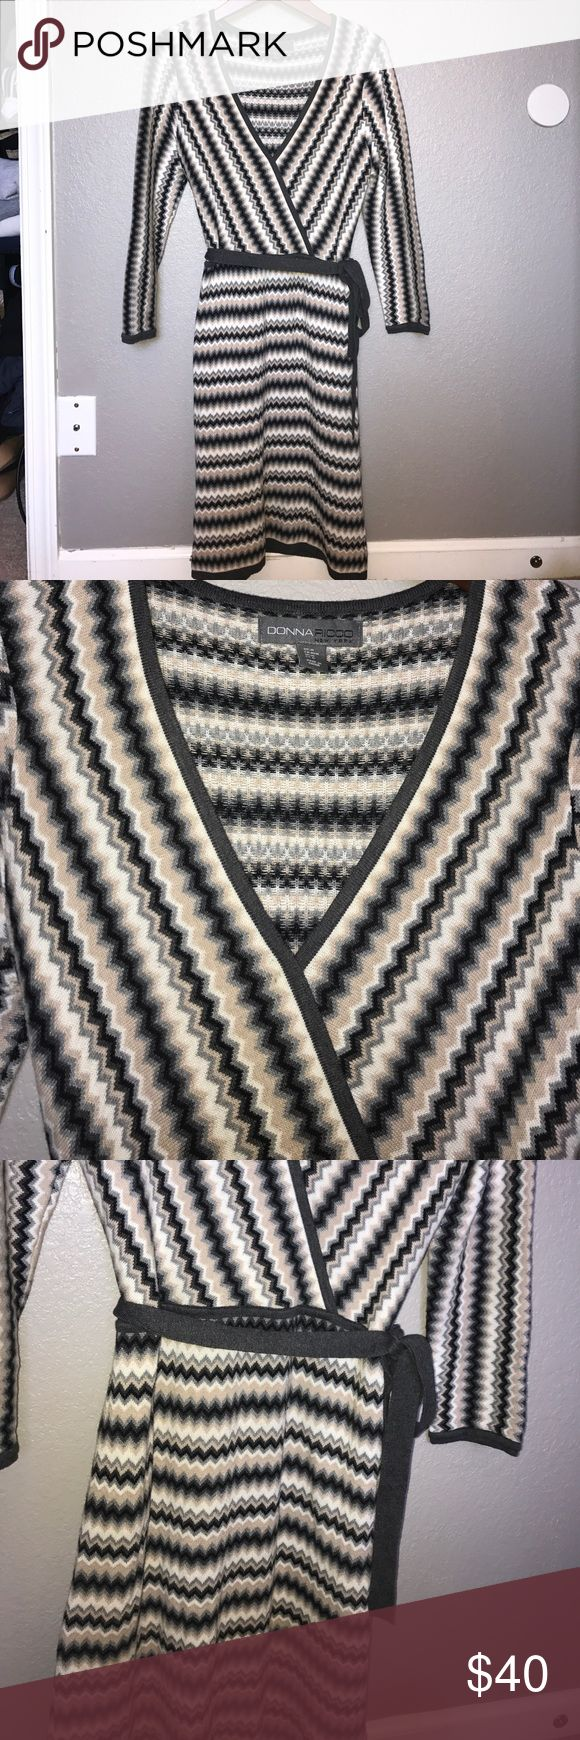 Donna Ricco Chevron Knit Dress 3/4 sleeve chevron dress. Side tie. Medium. Taupe, cream, black and gray. V-neck. Fall will be here before you know it 👌🏼💕 Excellent condition. Donna Ricco Dresses Long Sleeve